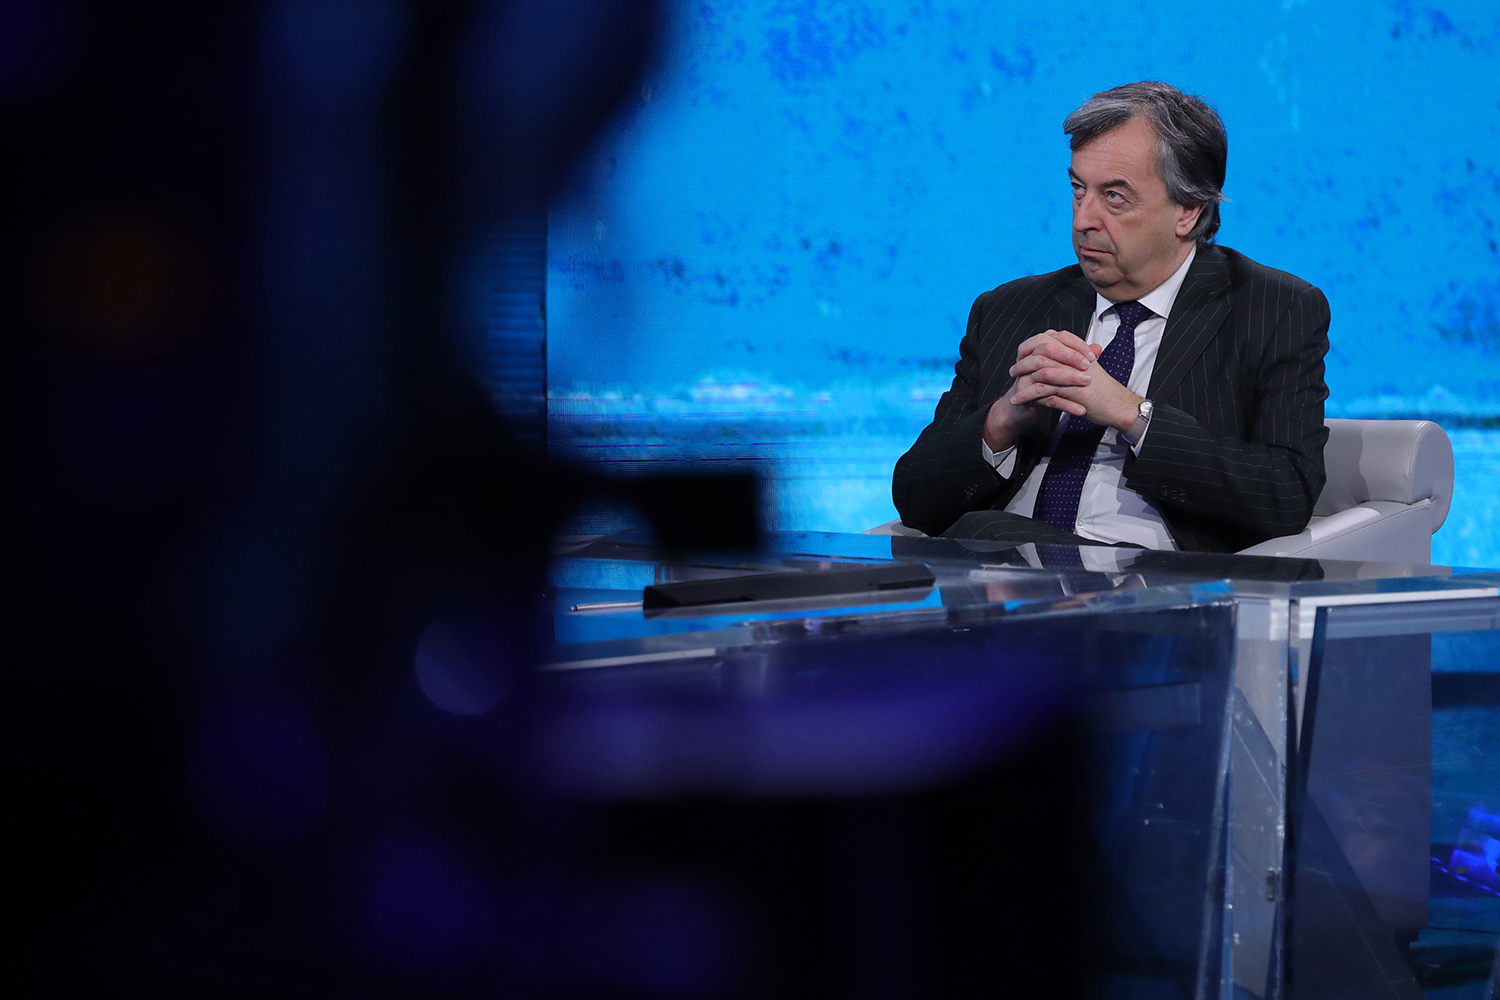 Burioni during a television appearance in Milan, Italy, on March 1, 2020.